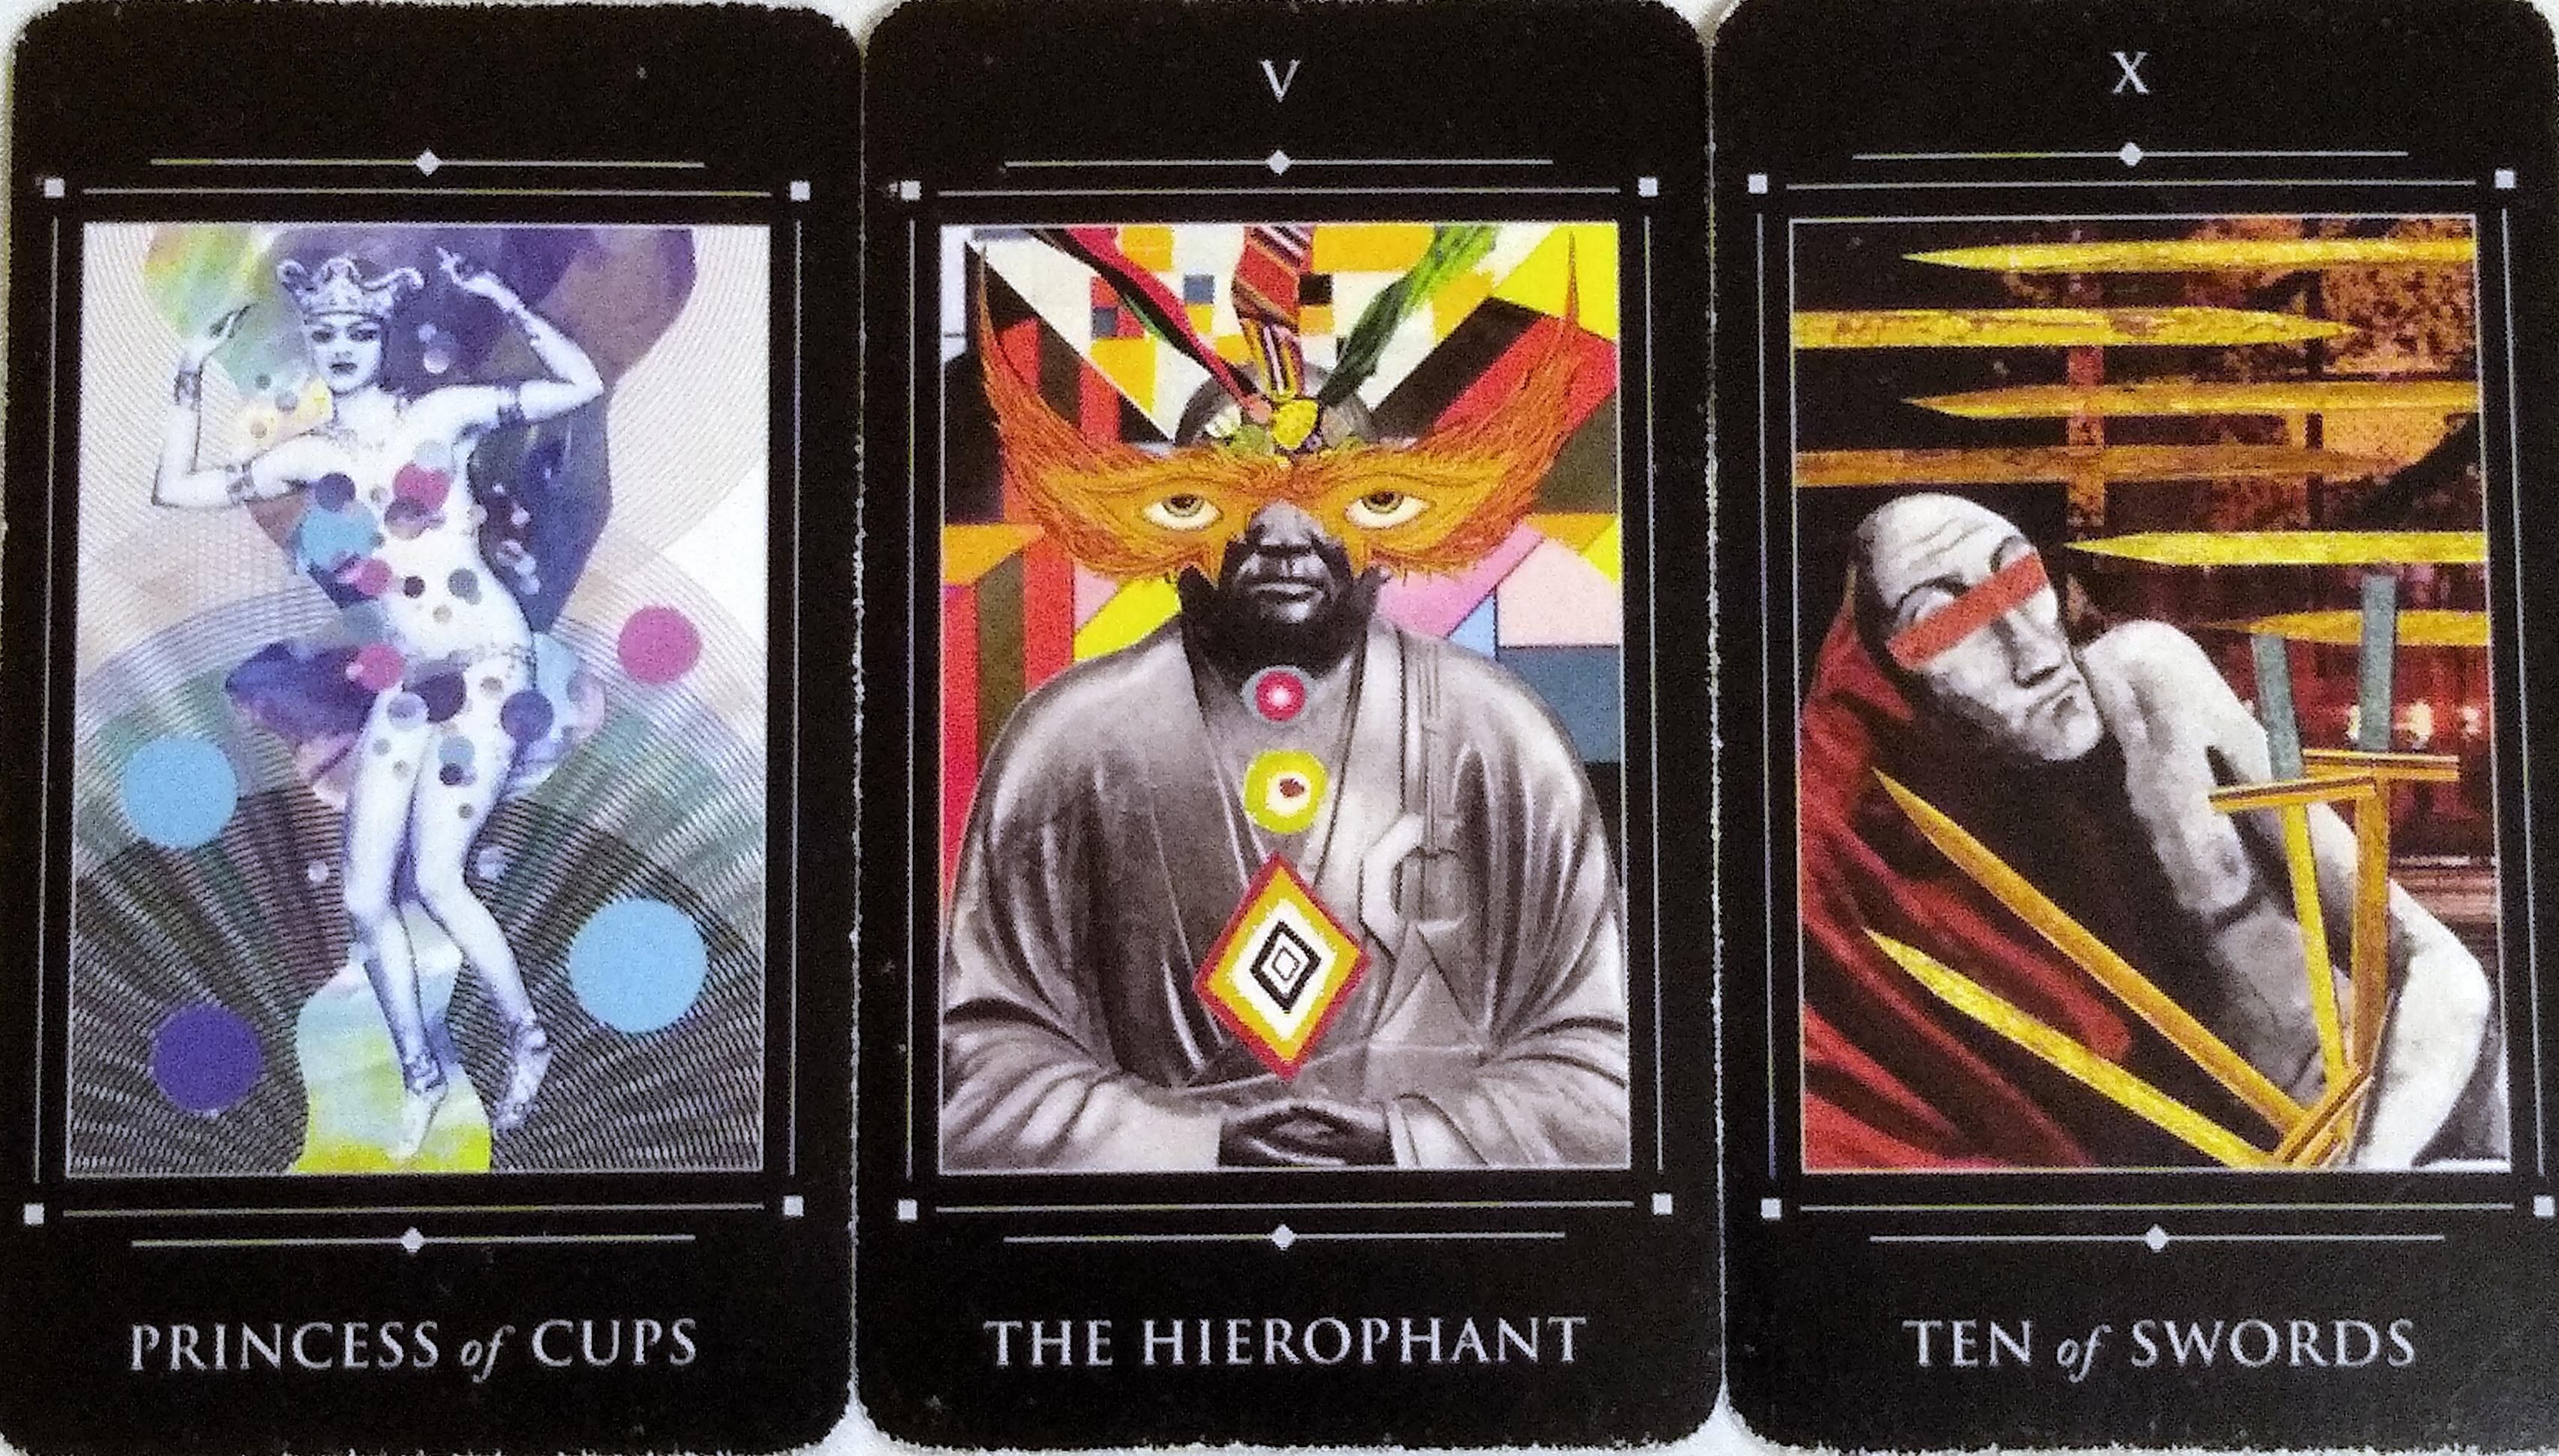 Red Magician: Princess of Cups, The Hierophant, & Ten of Swords.